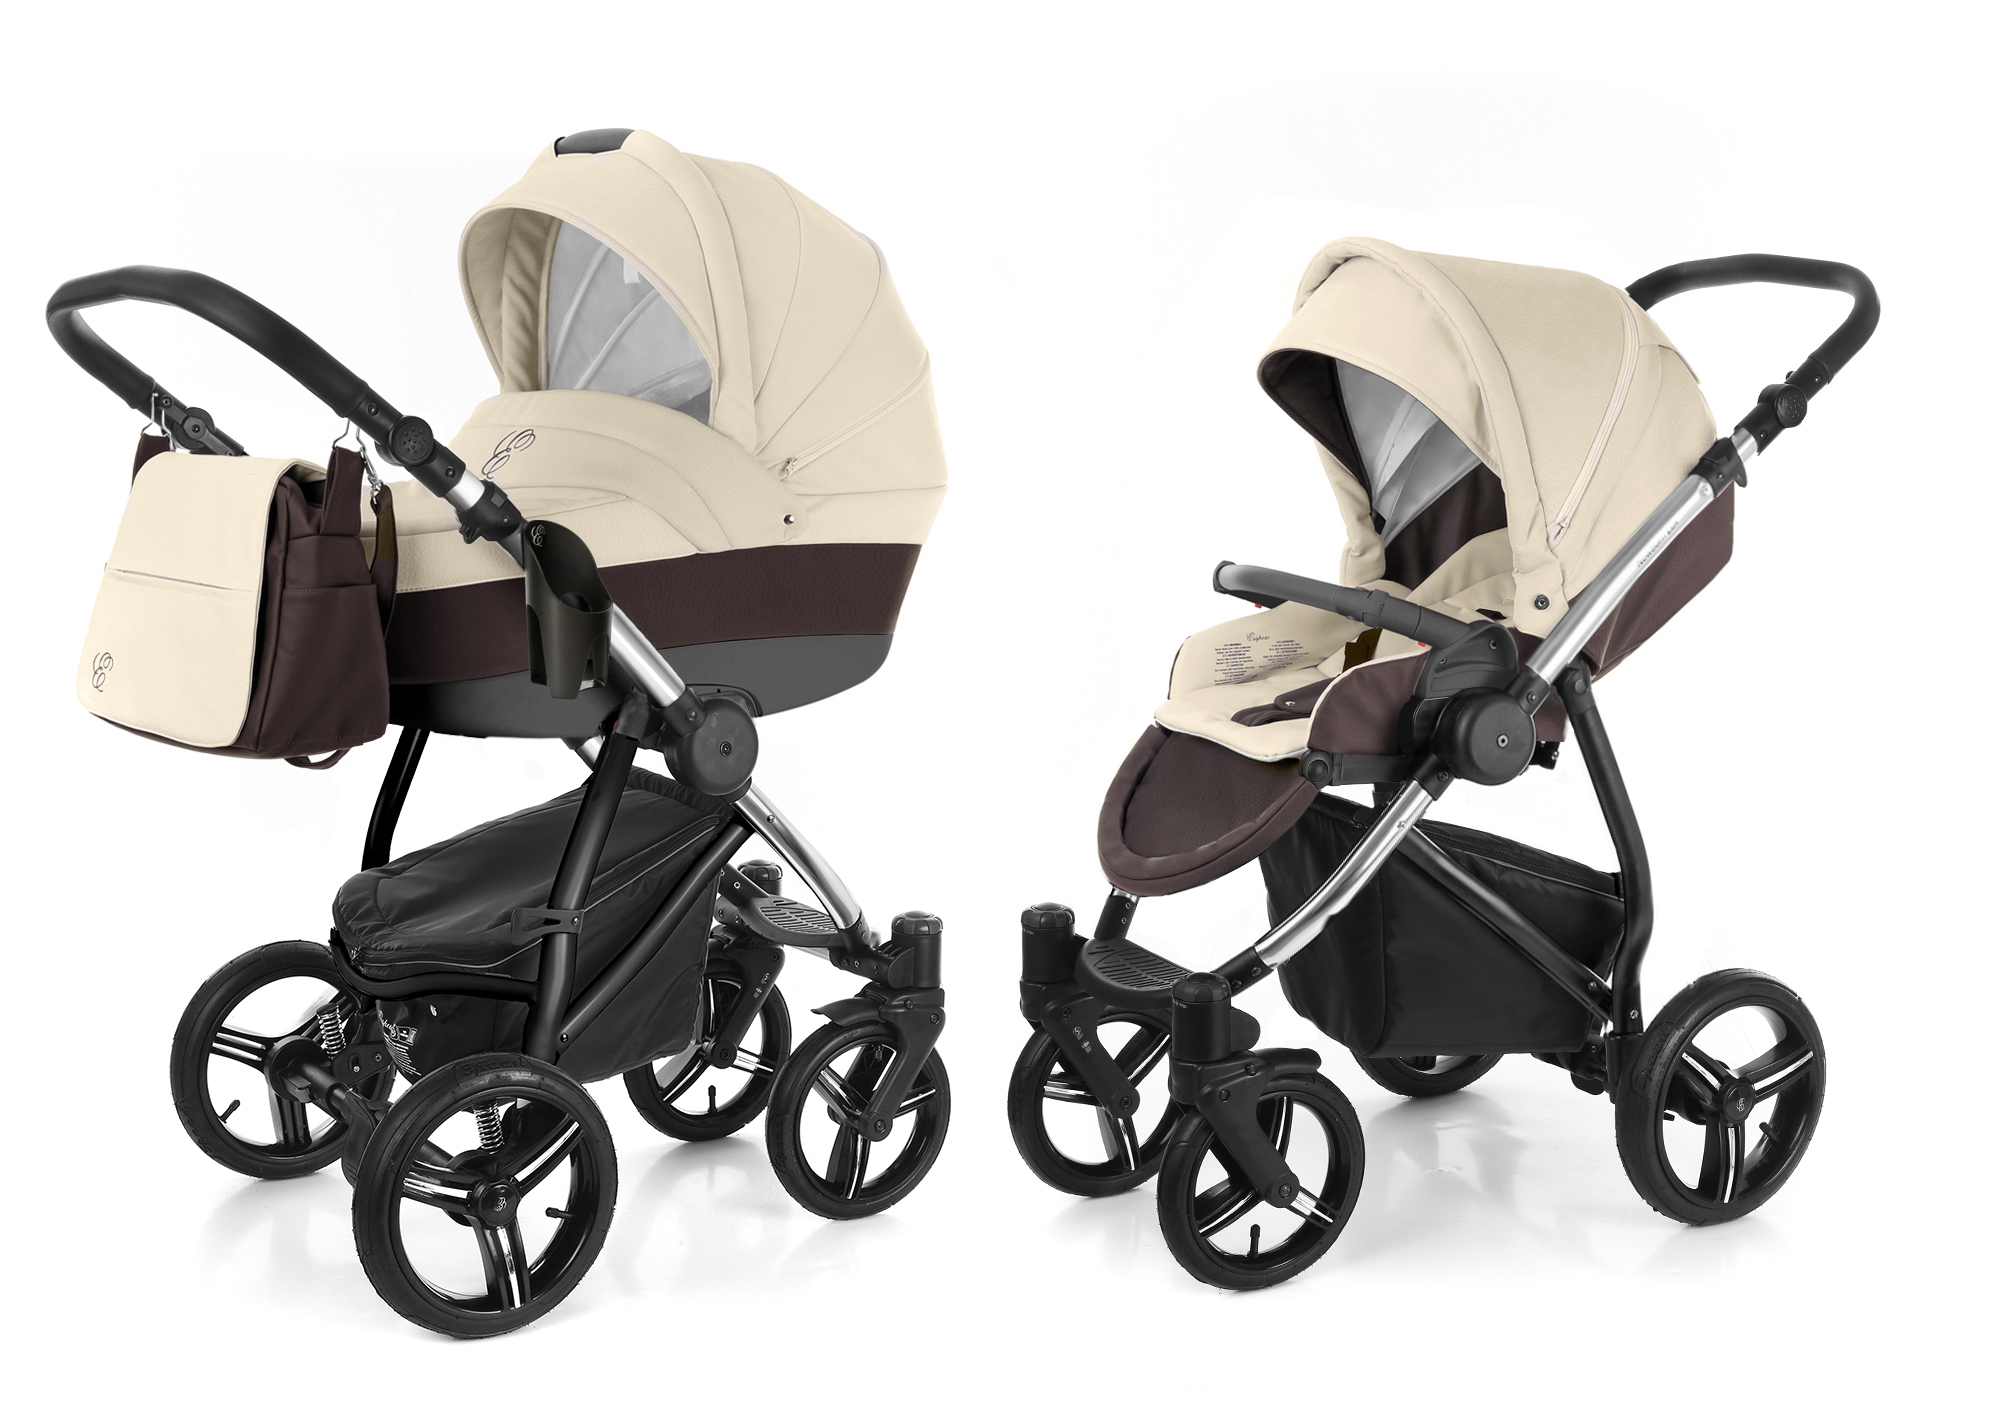 Коляска 2 в 1 Esspero Grand Newborn Lux (шасси Chrome). Фото N10